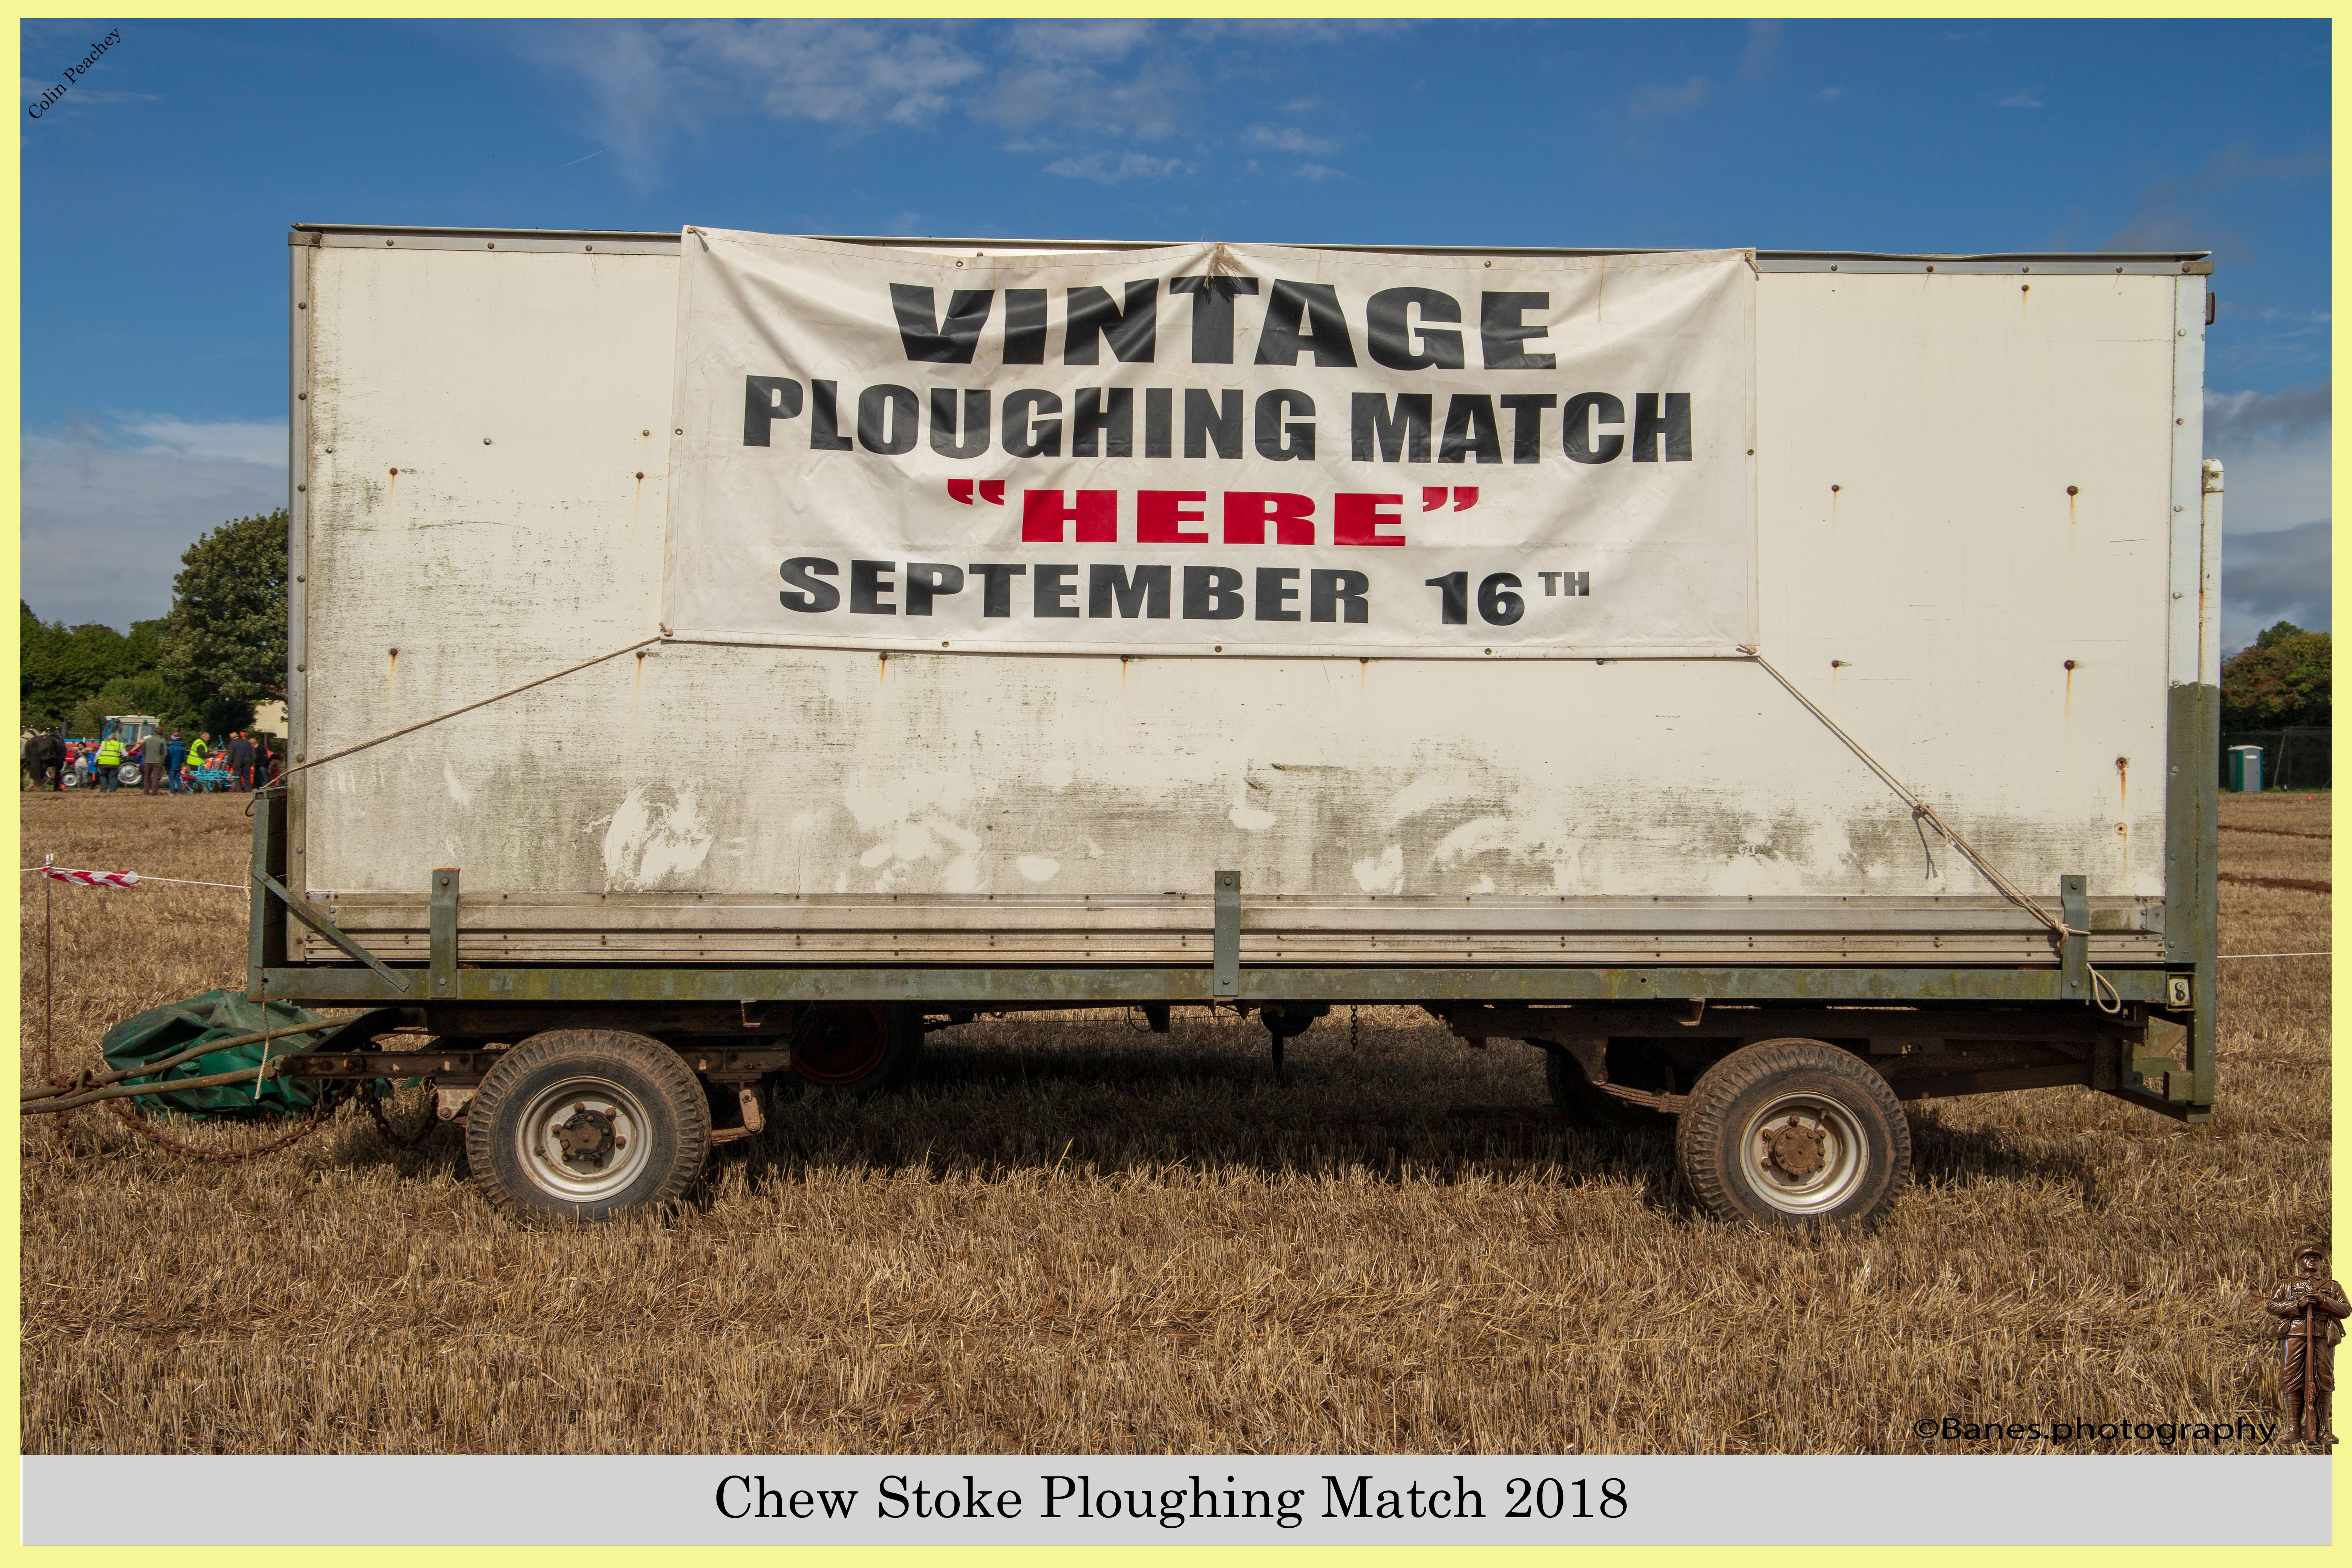 Trailer Show Sign, Chew Stoke 2018